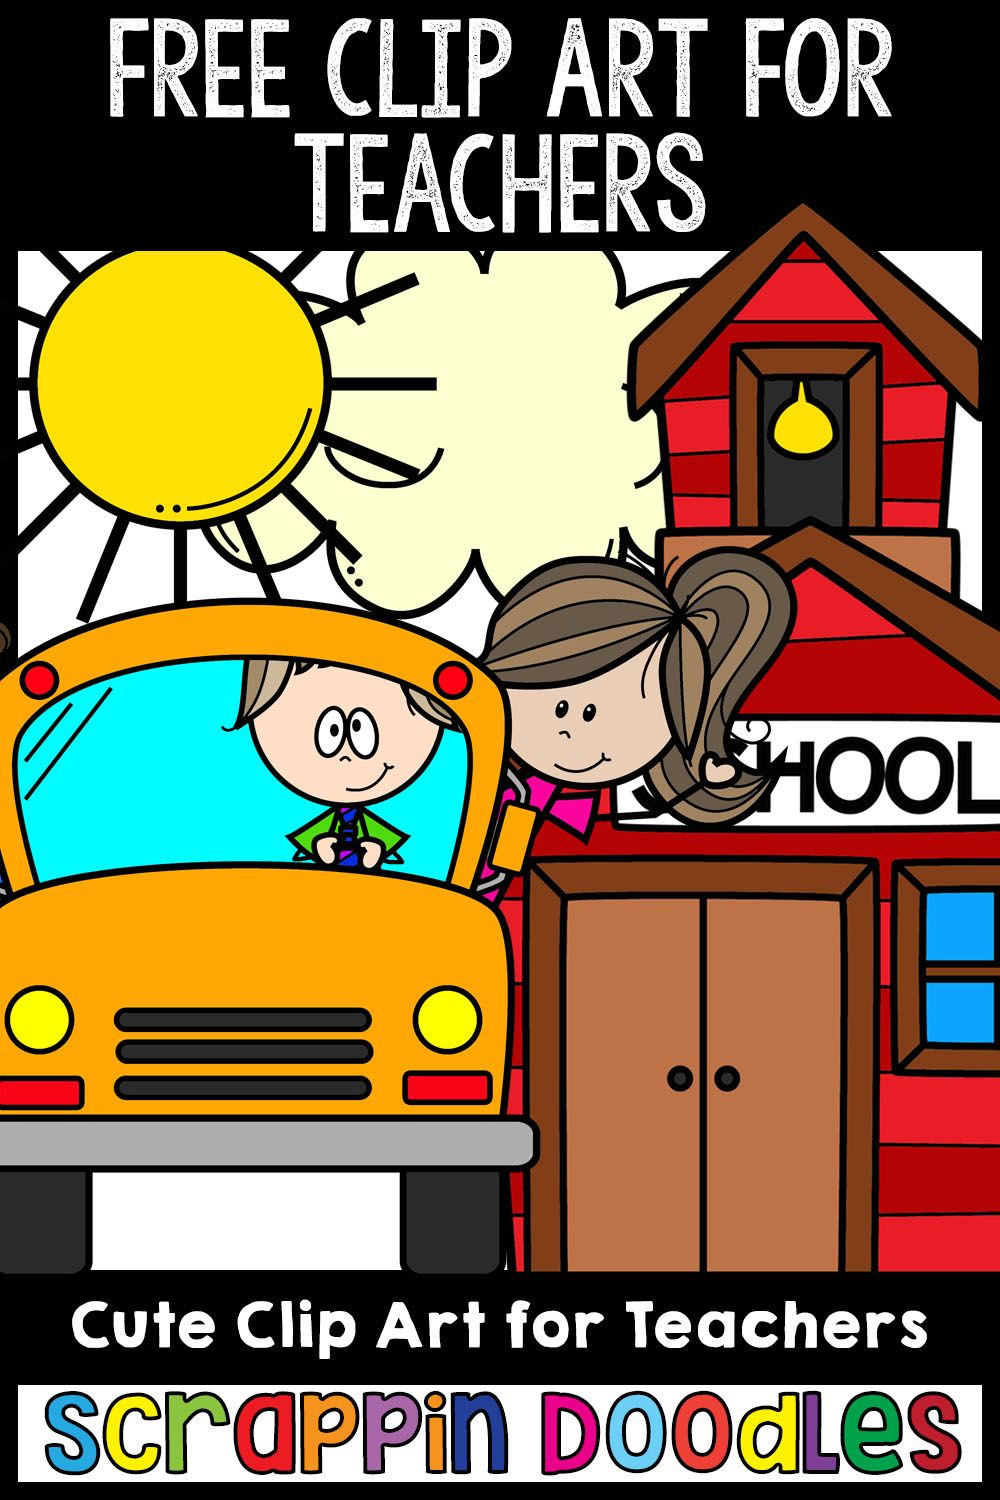 Free Clip Art For Teachers Commercial Use Clip Art Freebies Free Clip Art Free School Clipart